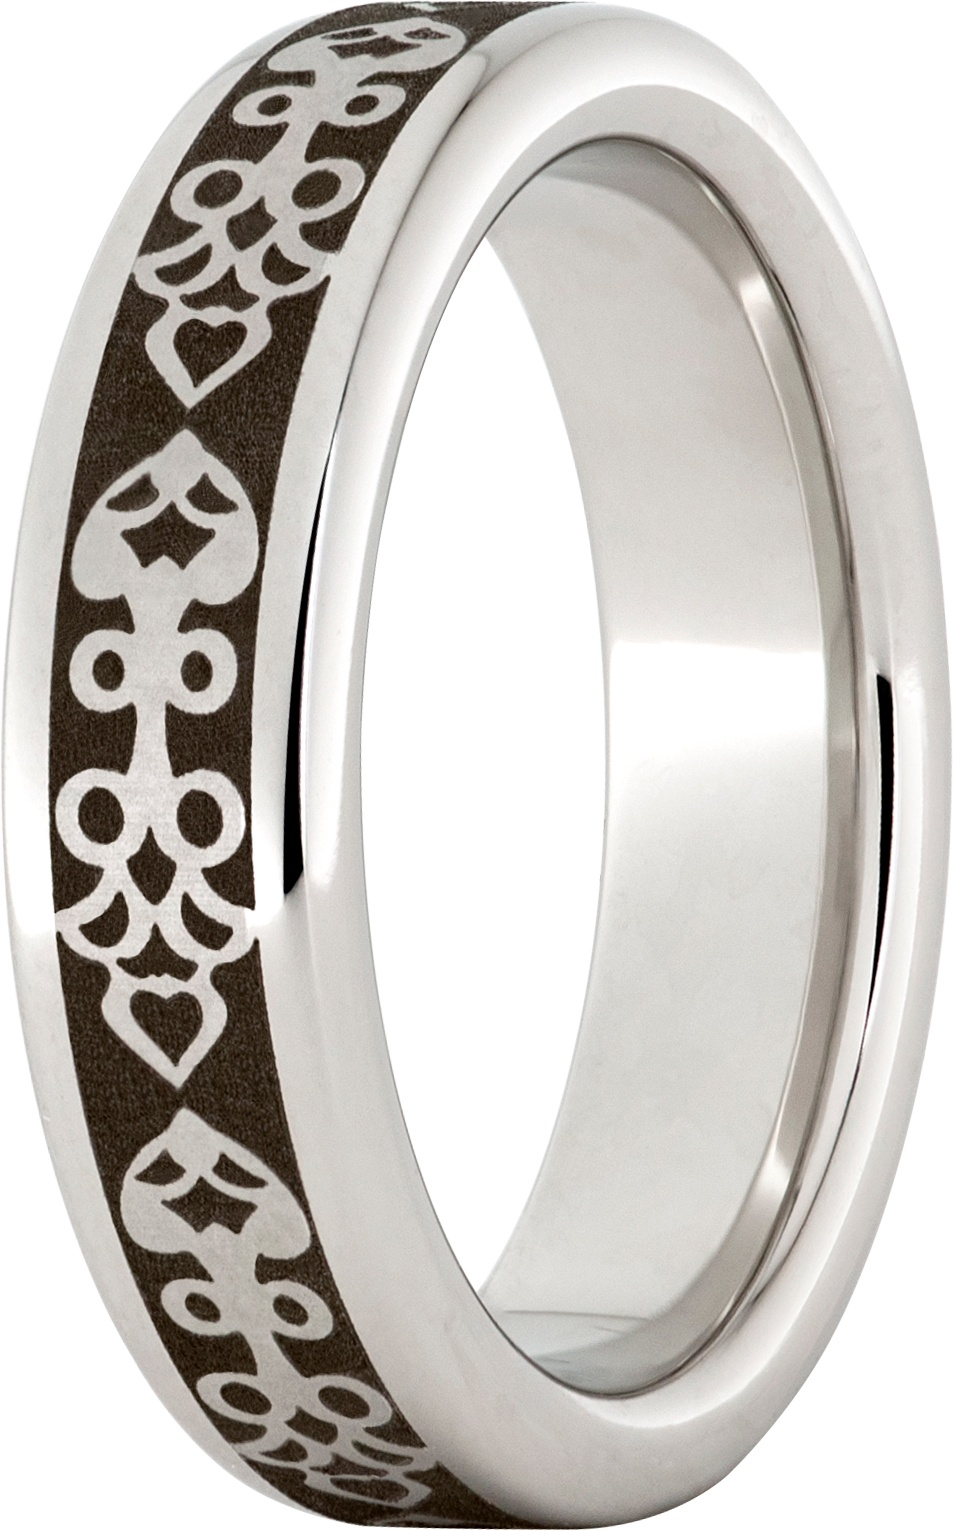 J_Innovations_Ring_Dark_Engraving.jpg